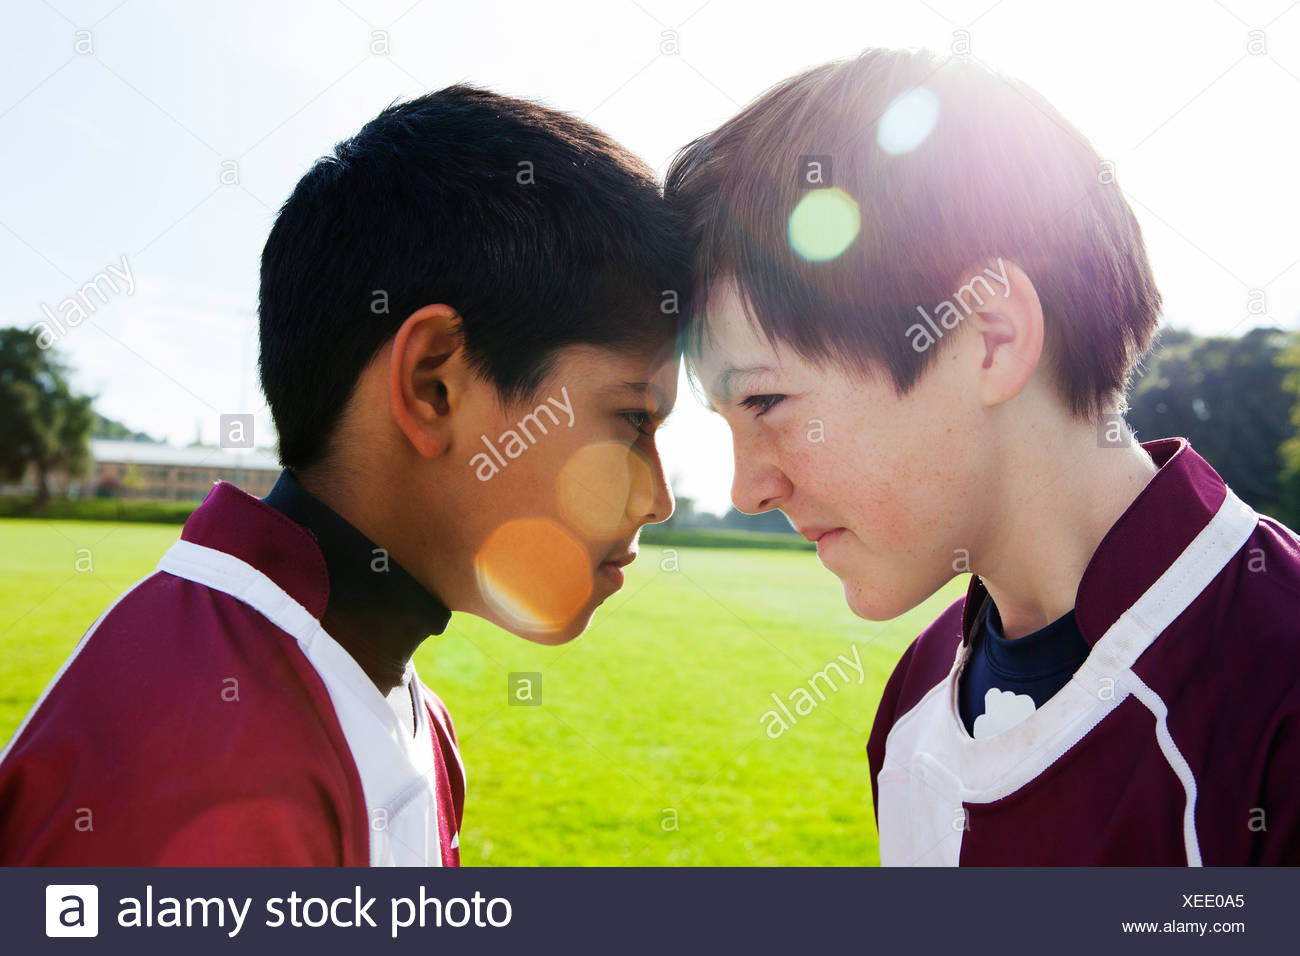 Two teenage schoolboys face to face - Stock Image